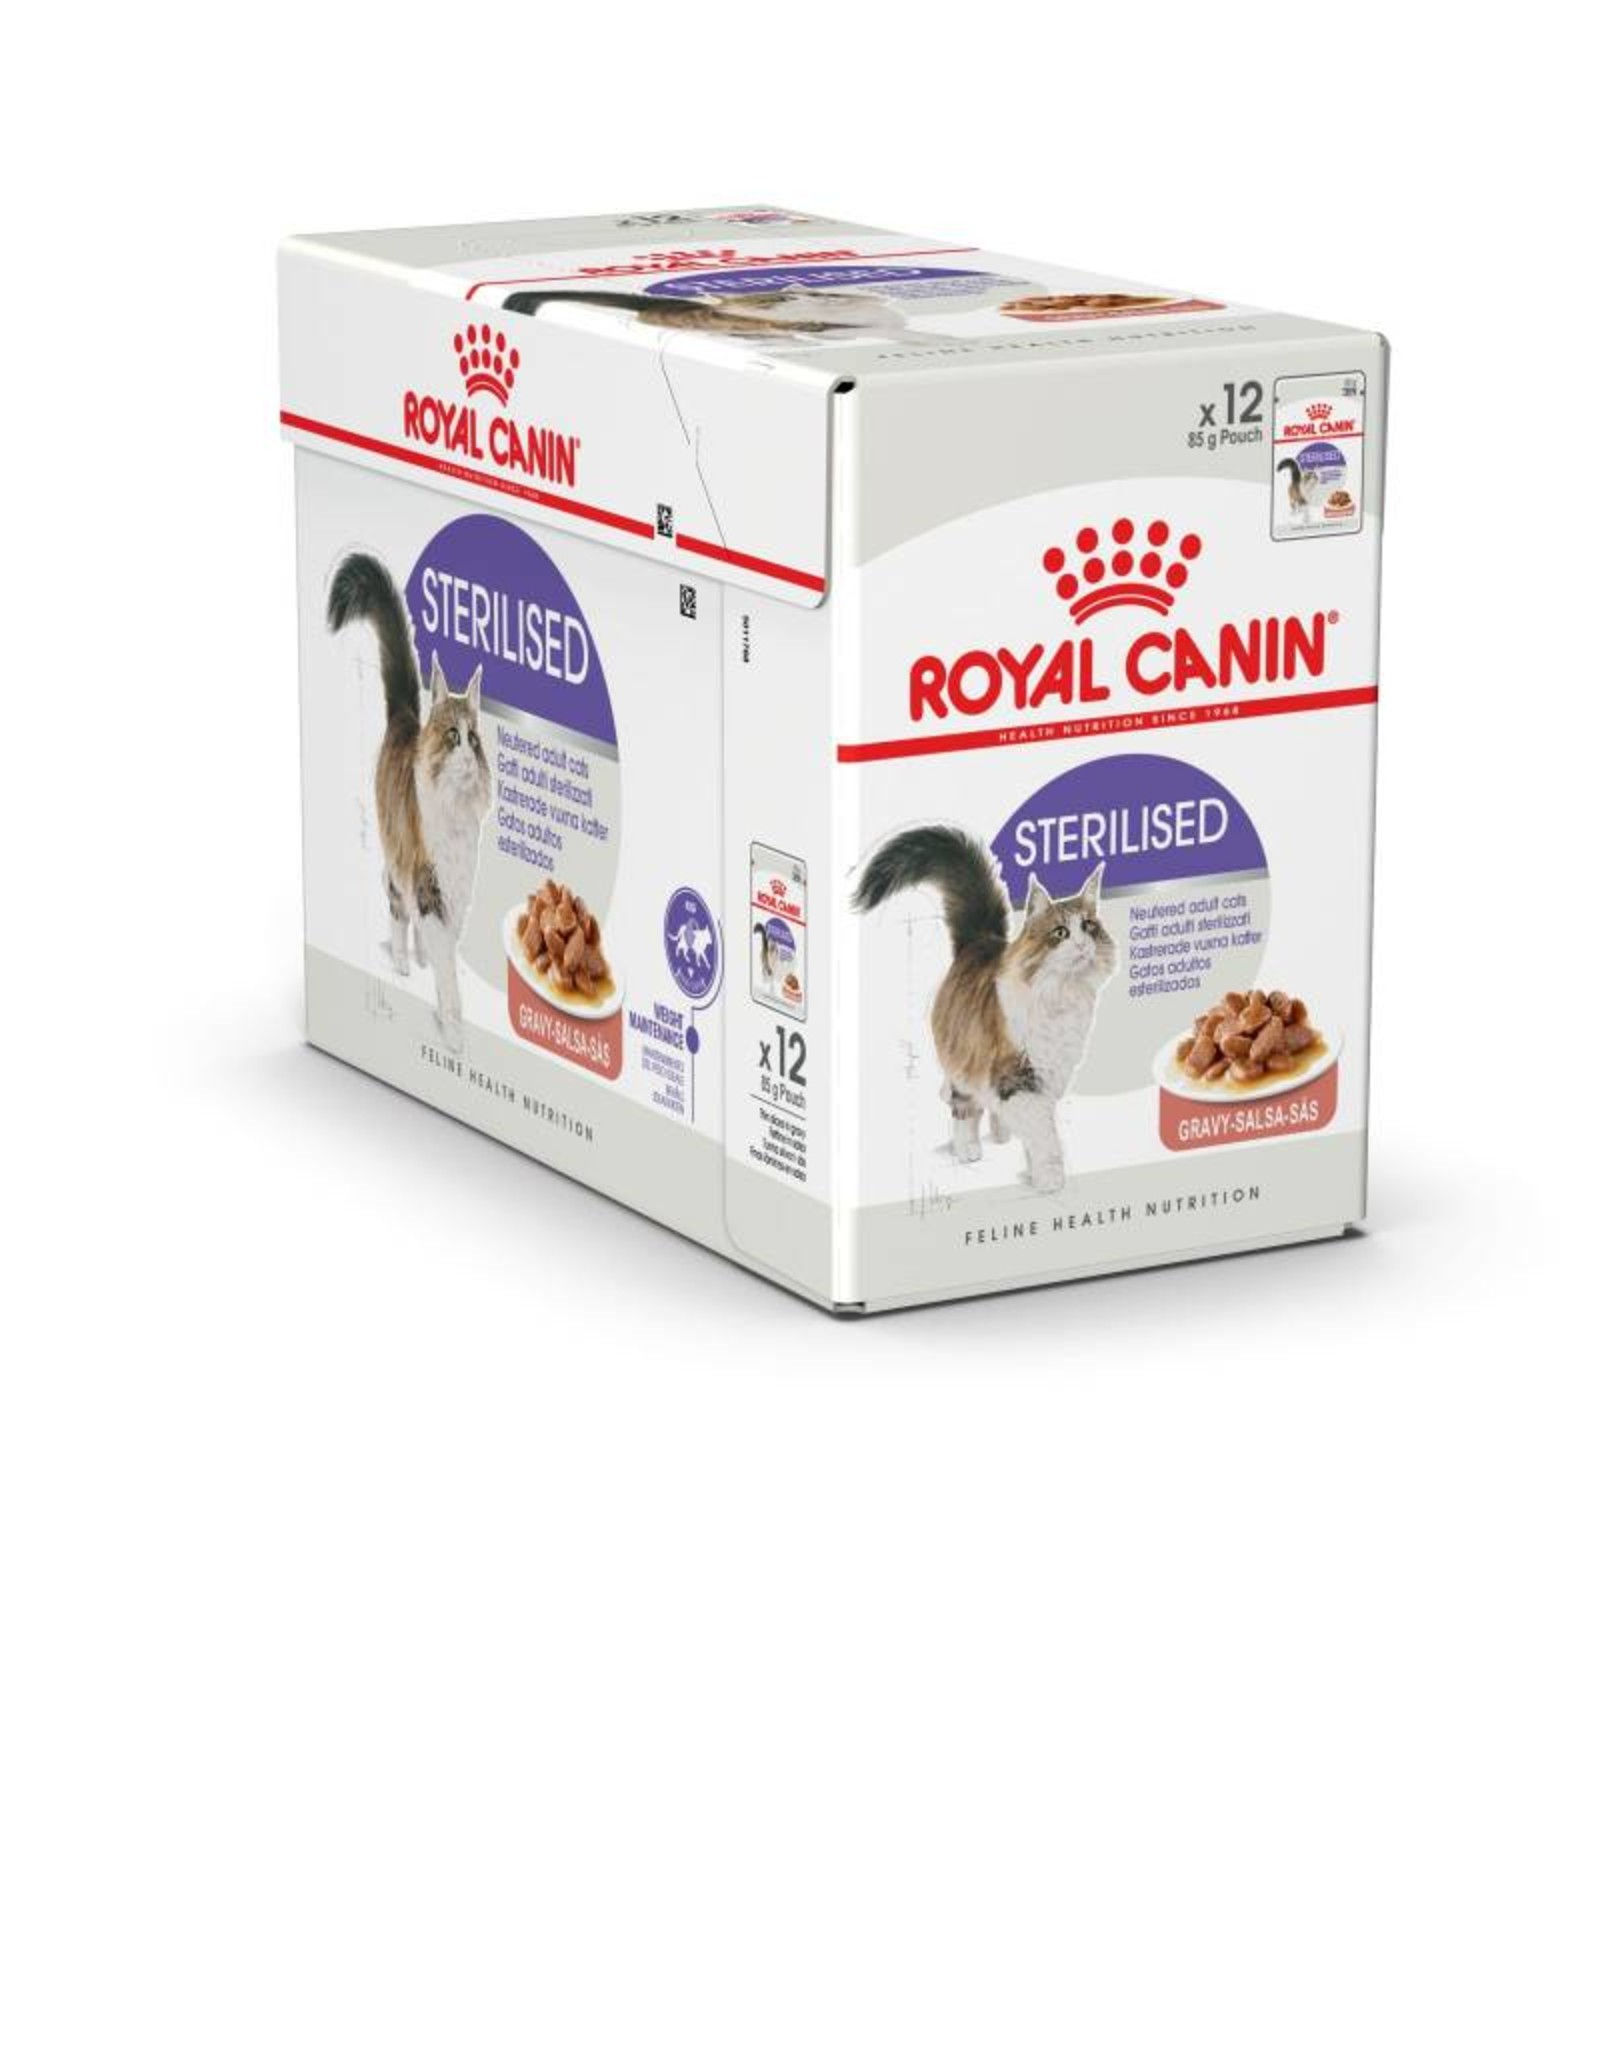 Royal Canin Sterilised Adult Cat Wet Food Pouch in Gravy, 85g, box of 12